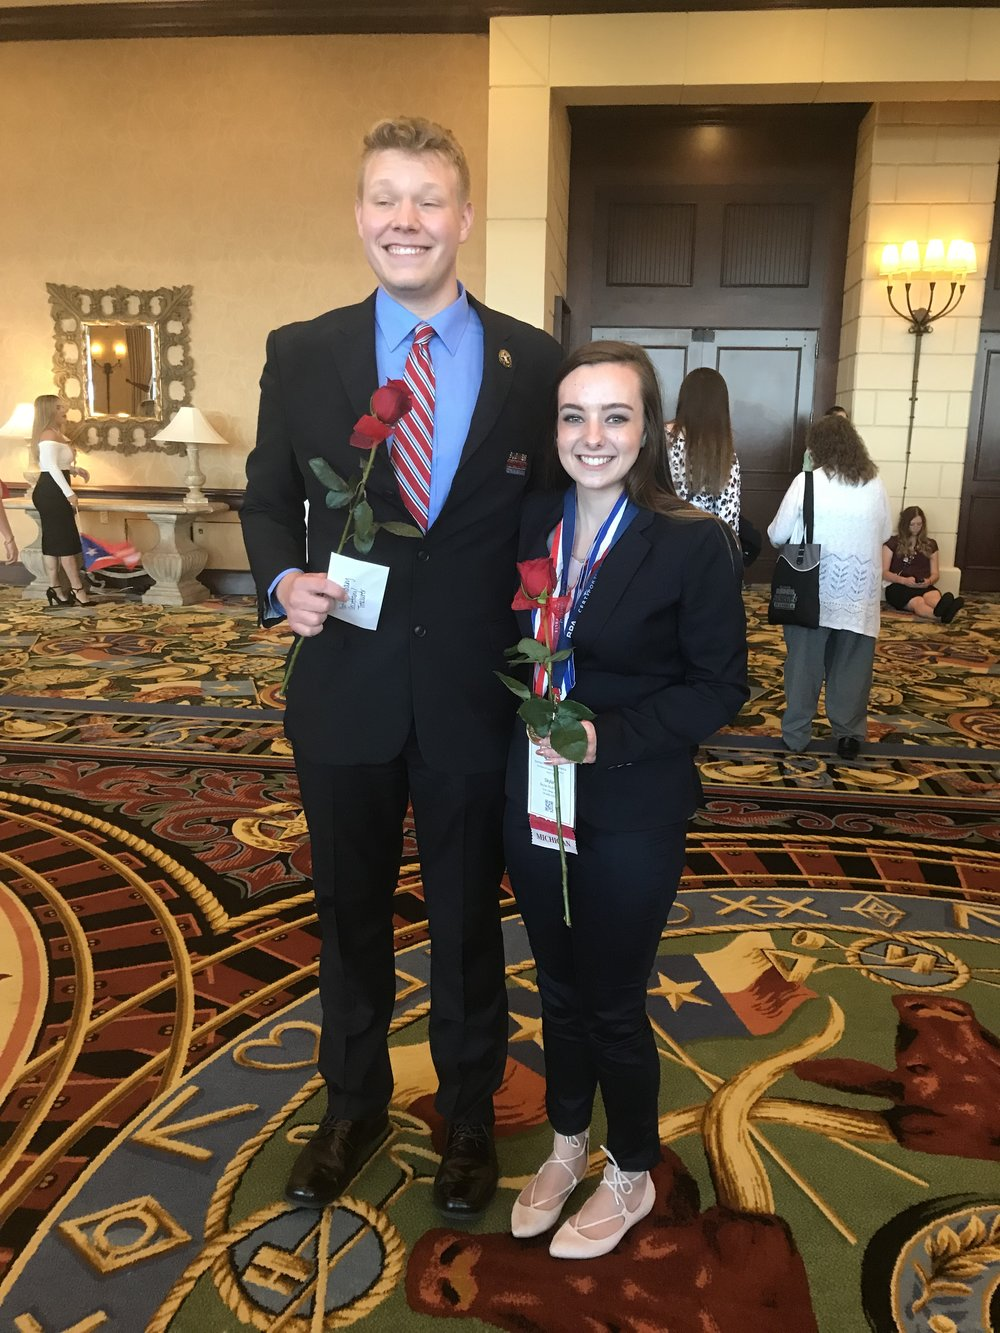 2018-2019 National Postsecondary President Skylar McArthur (right) - 2018 NLC - with fellow national officer